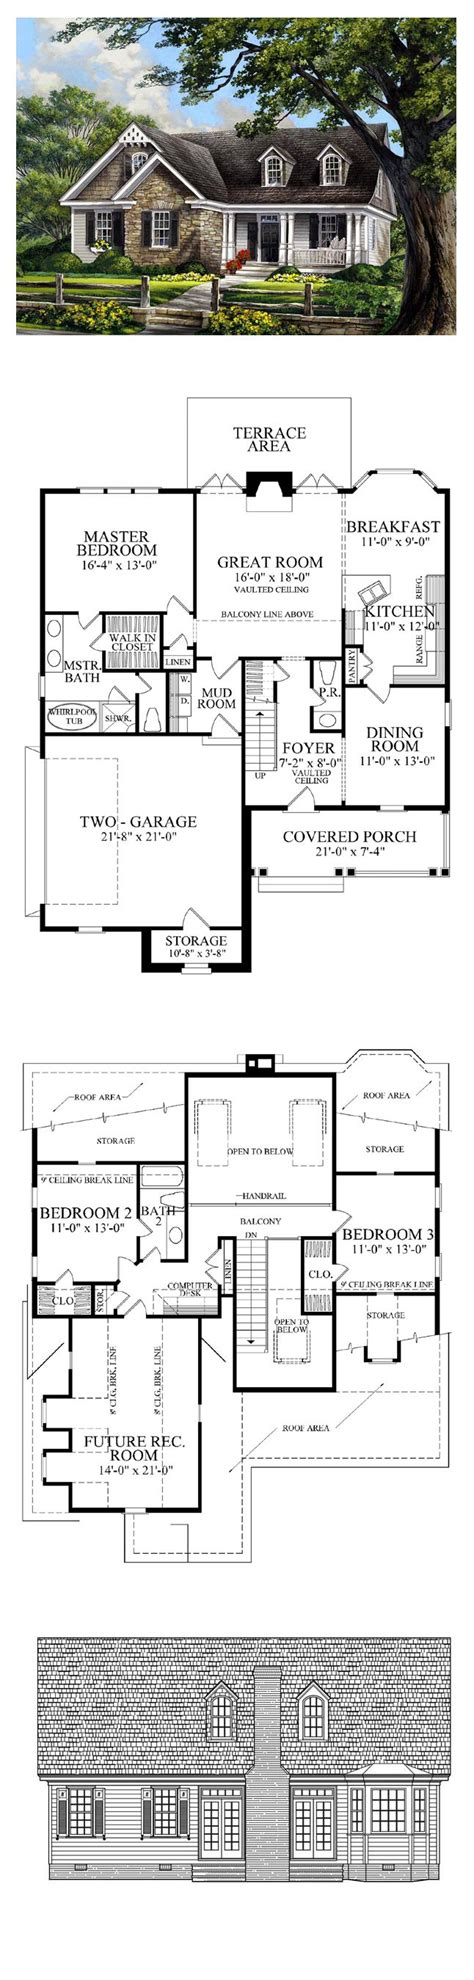 3 bedroom country floor plan country ranch house plans floor and 3 bedroom plan simple